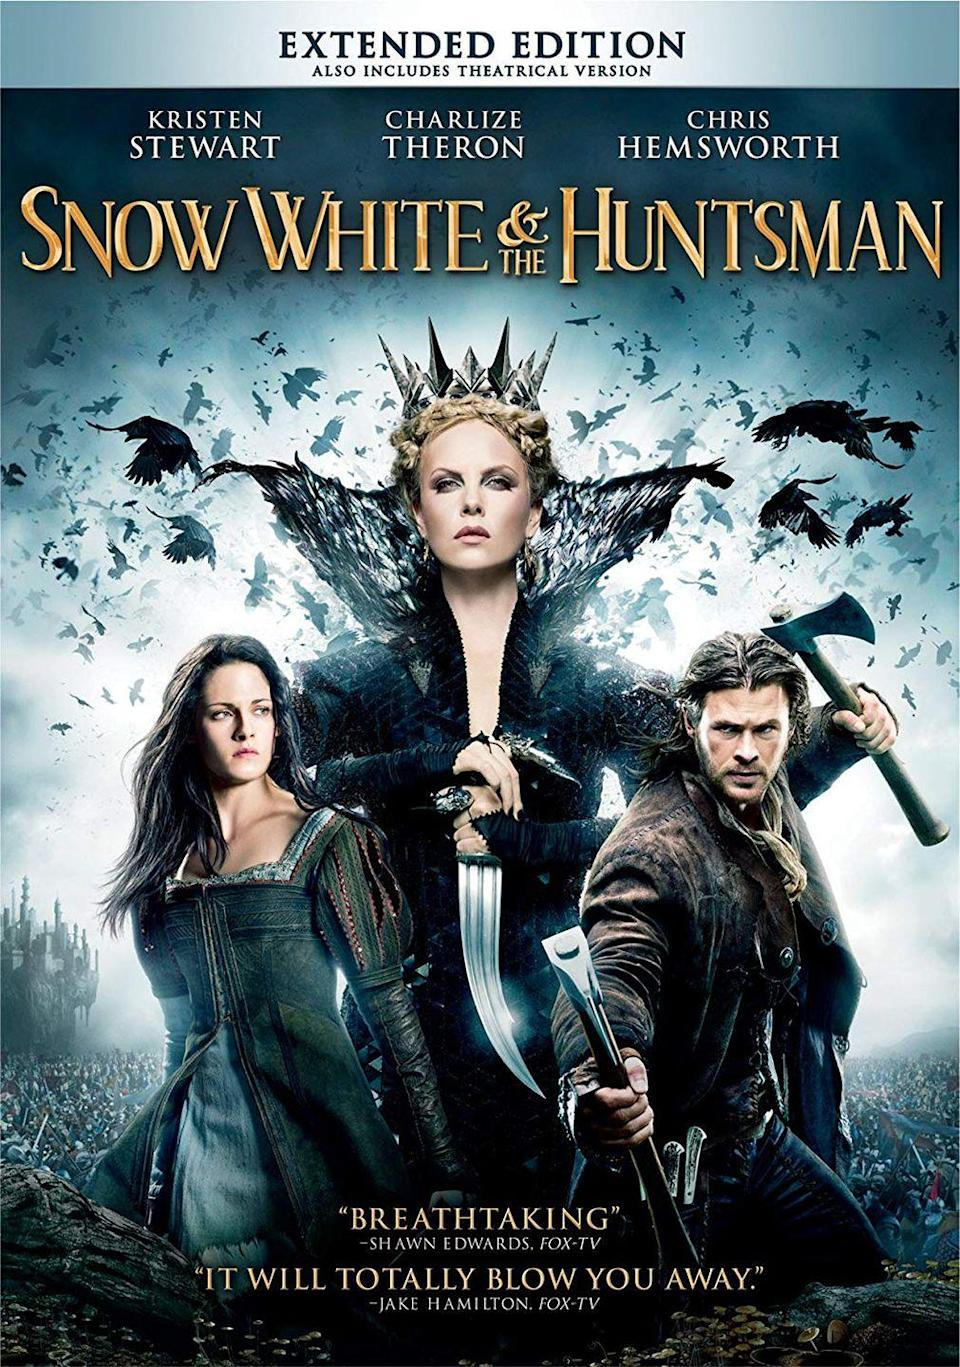 """<p>Is it cold in here or is it just ice queen Charlize Theron? She plays a very spooky villain in this dark twist on the beloved fairytale. </p><p><a class=""""link rapid-noclick-resp"""" href=""""https://www.amazon.com/Snow-White-Huntsman-Kristen-Stewart/dp/B008Y1RTUG/?tag=syn-yahoo-20&ascsubtag=%5Bartid%7C10050.g.25336174%5Bsrc%7Cyahoo-us"""" rel=""""nofollow noopener"""" target=""""_blank"""" data-ylk=""""slk:WATCH NOW"""">WATCH NOW</a></p>"""